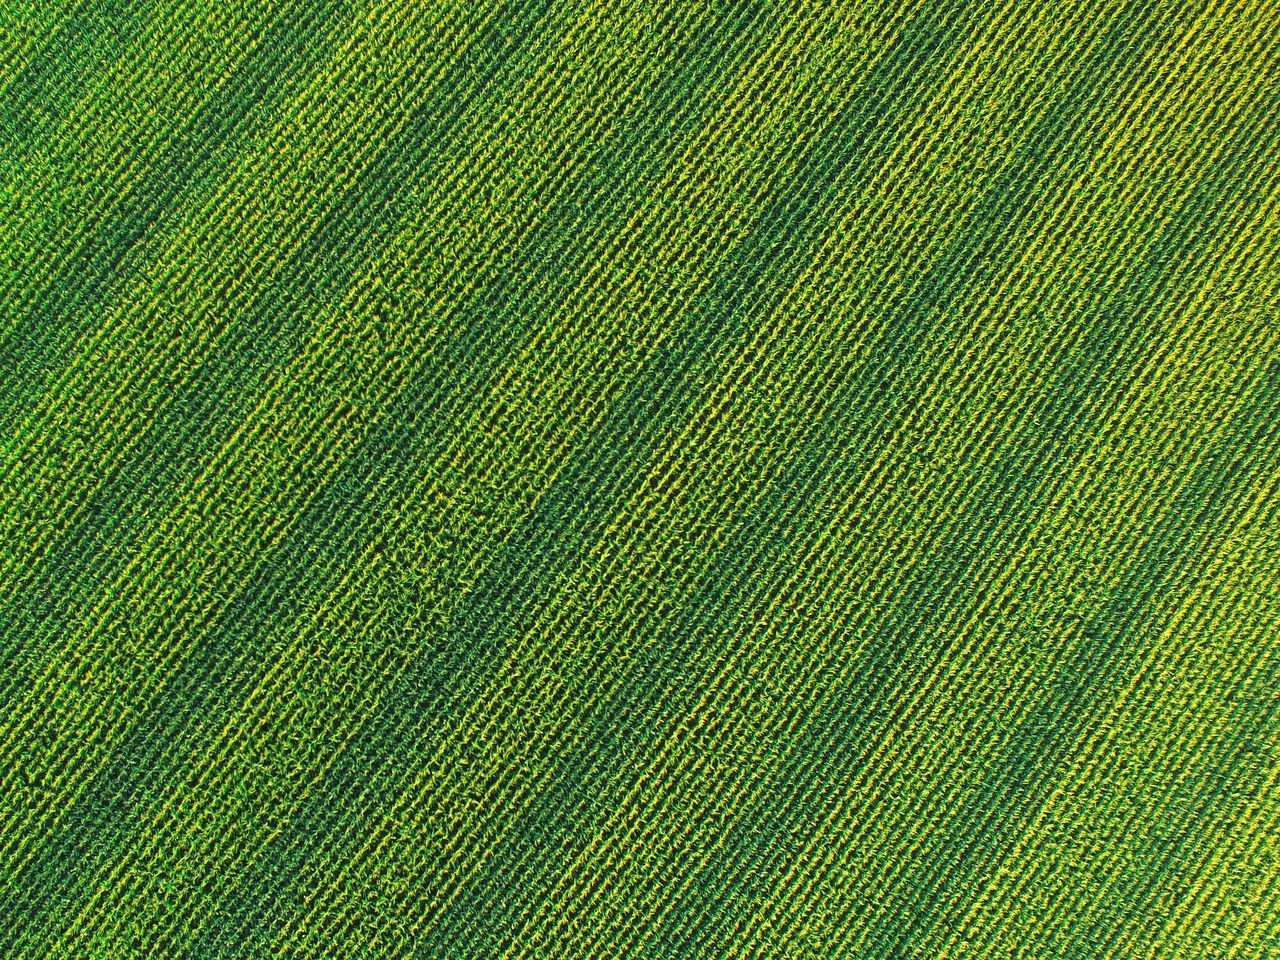 Farm Farmland Cornfield Agriculture Green Dronephotography Drone  Aerial View A Bird's Eye View Color Palette